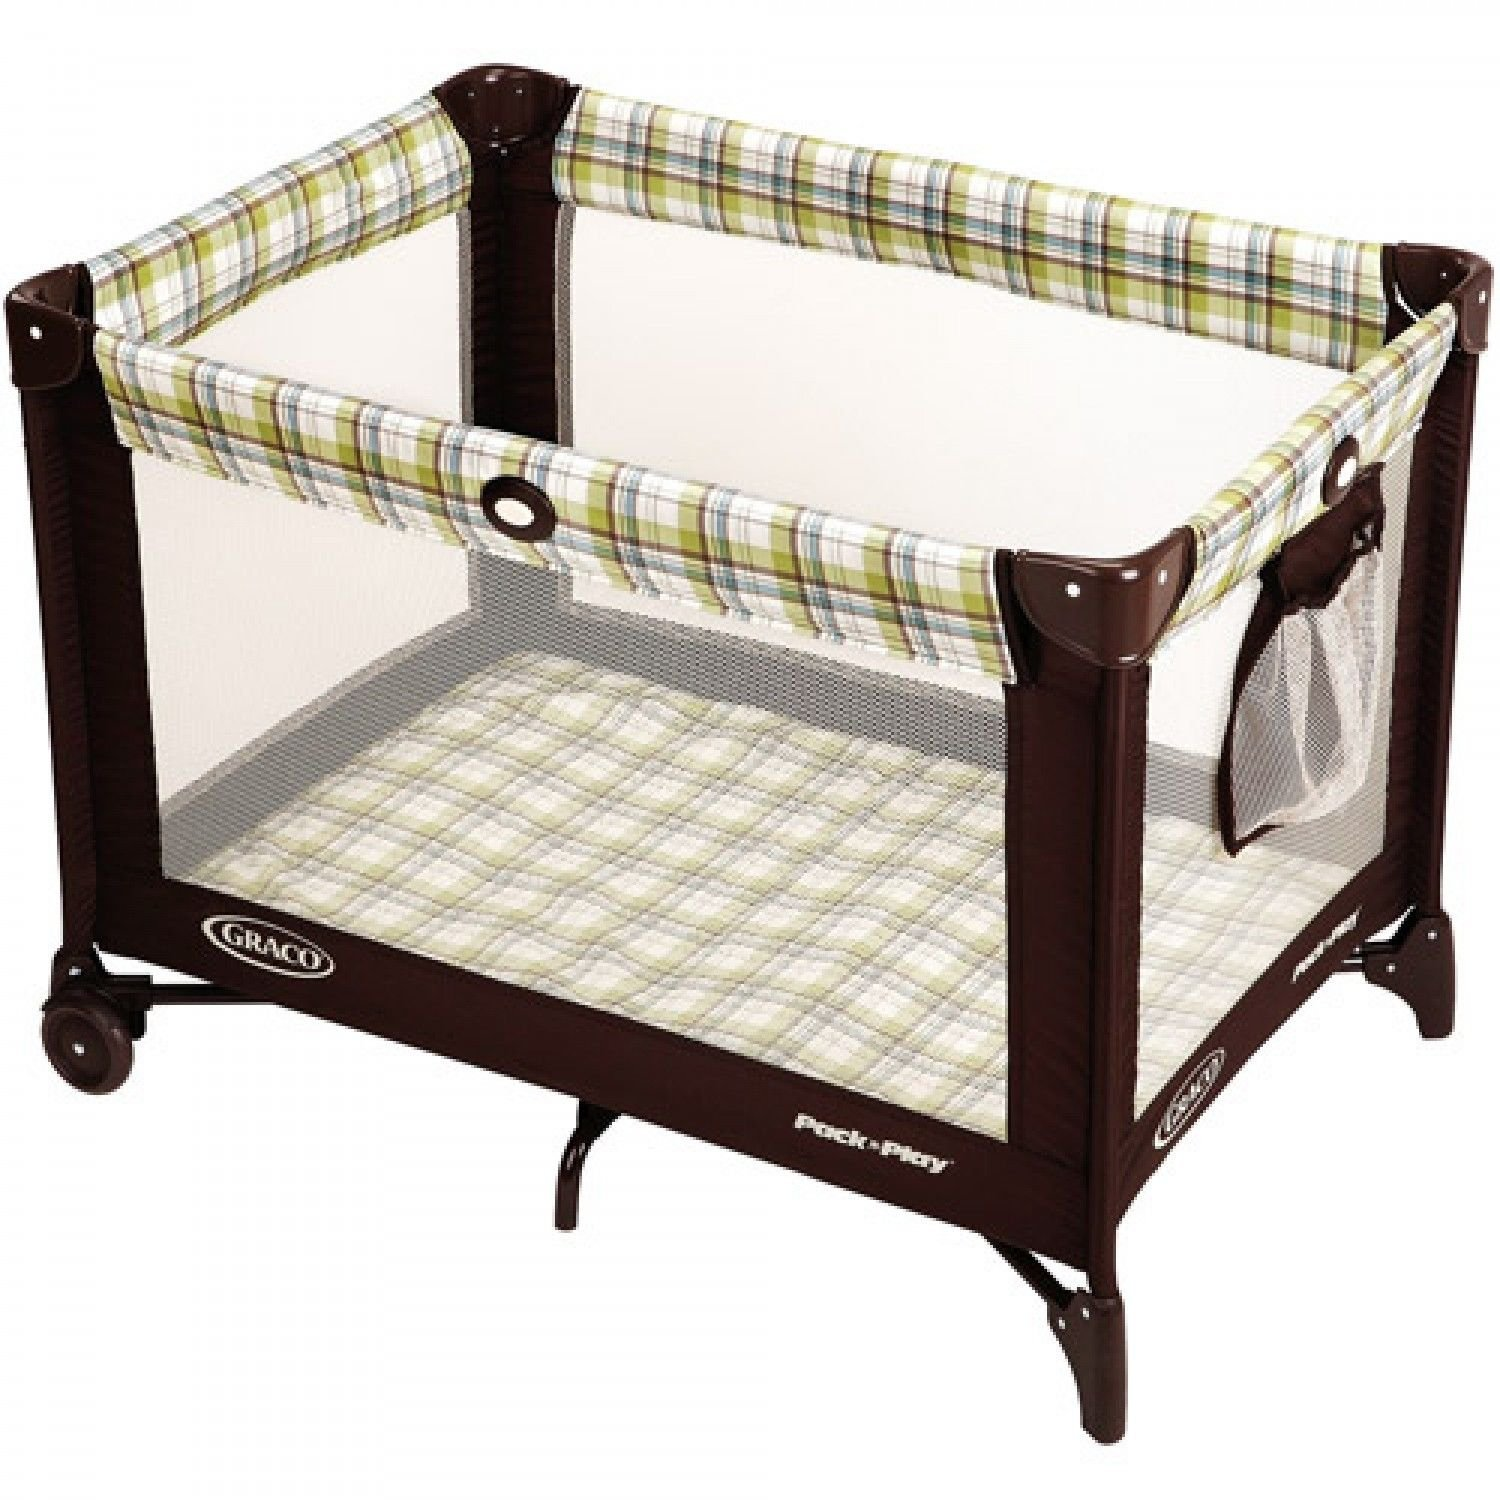 Amazon Graco Pack n Play Portable Travel Baby Crib Playpen